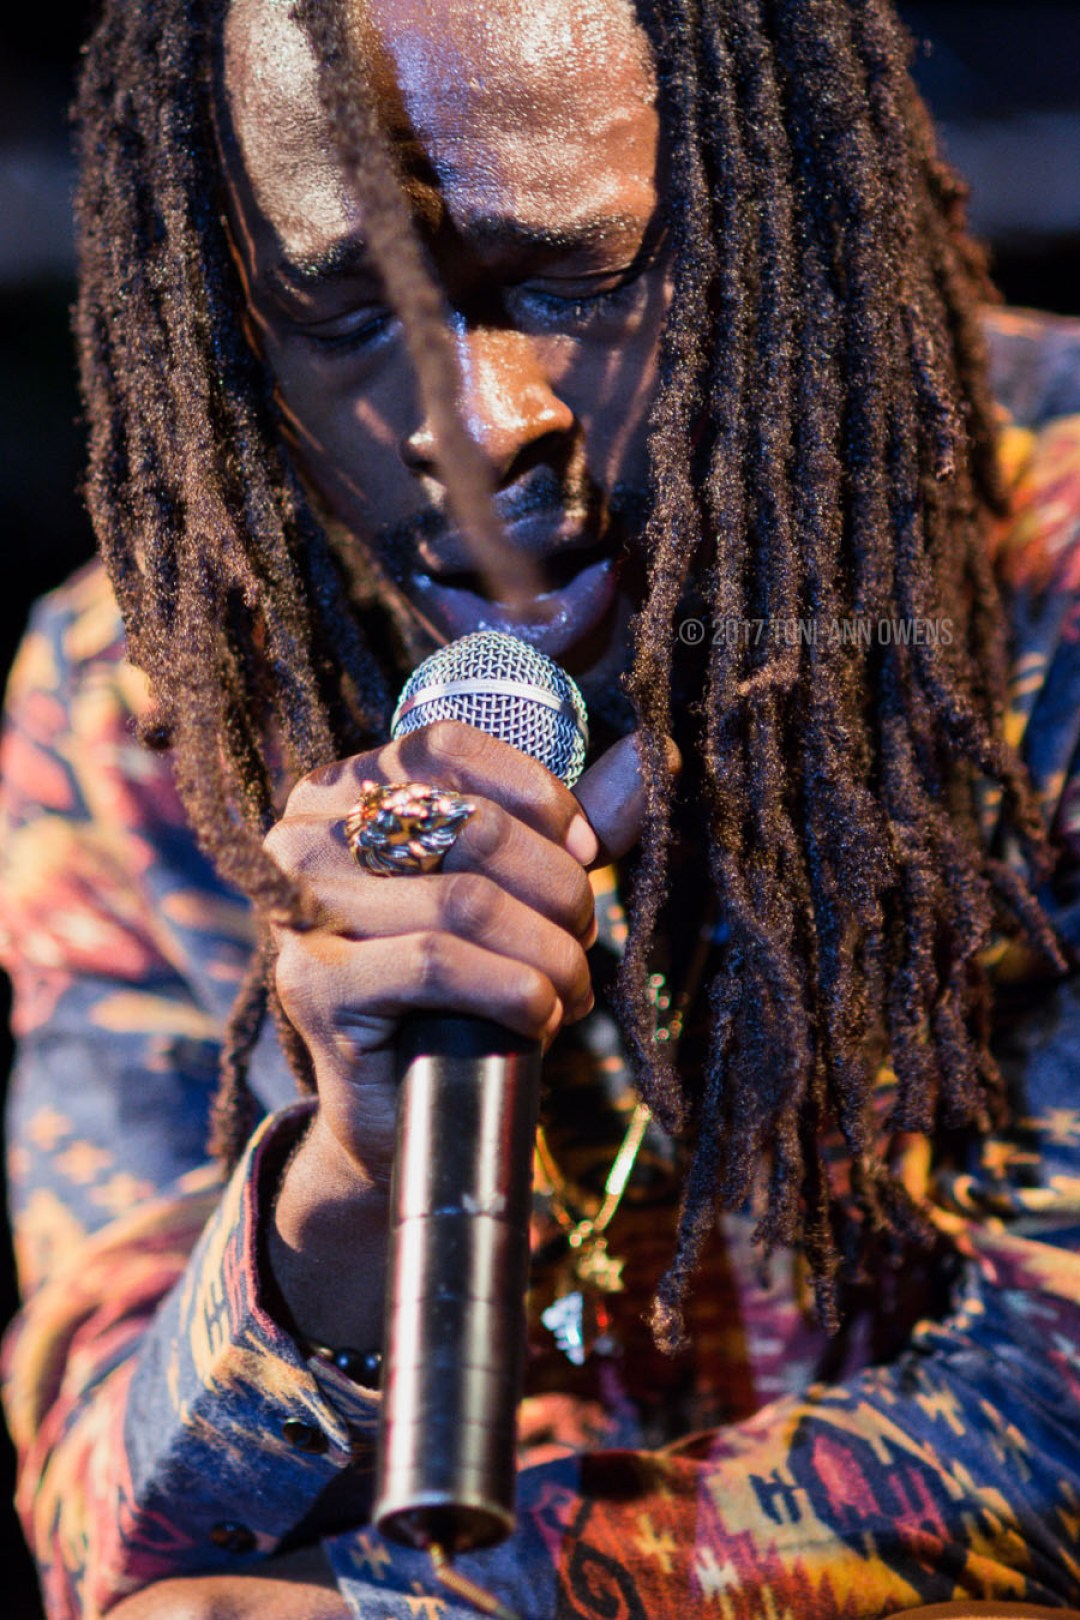 Jesse Royal at Wickie Wackie Music Festival 2015 in St. Thomas Jamaica © 2017 Toni-Ann Owens